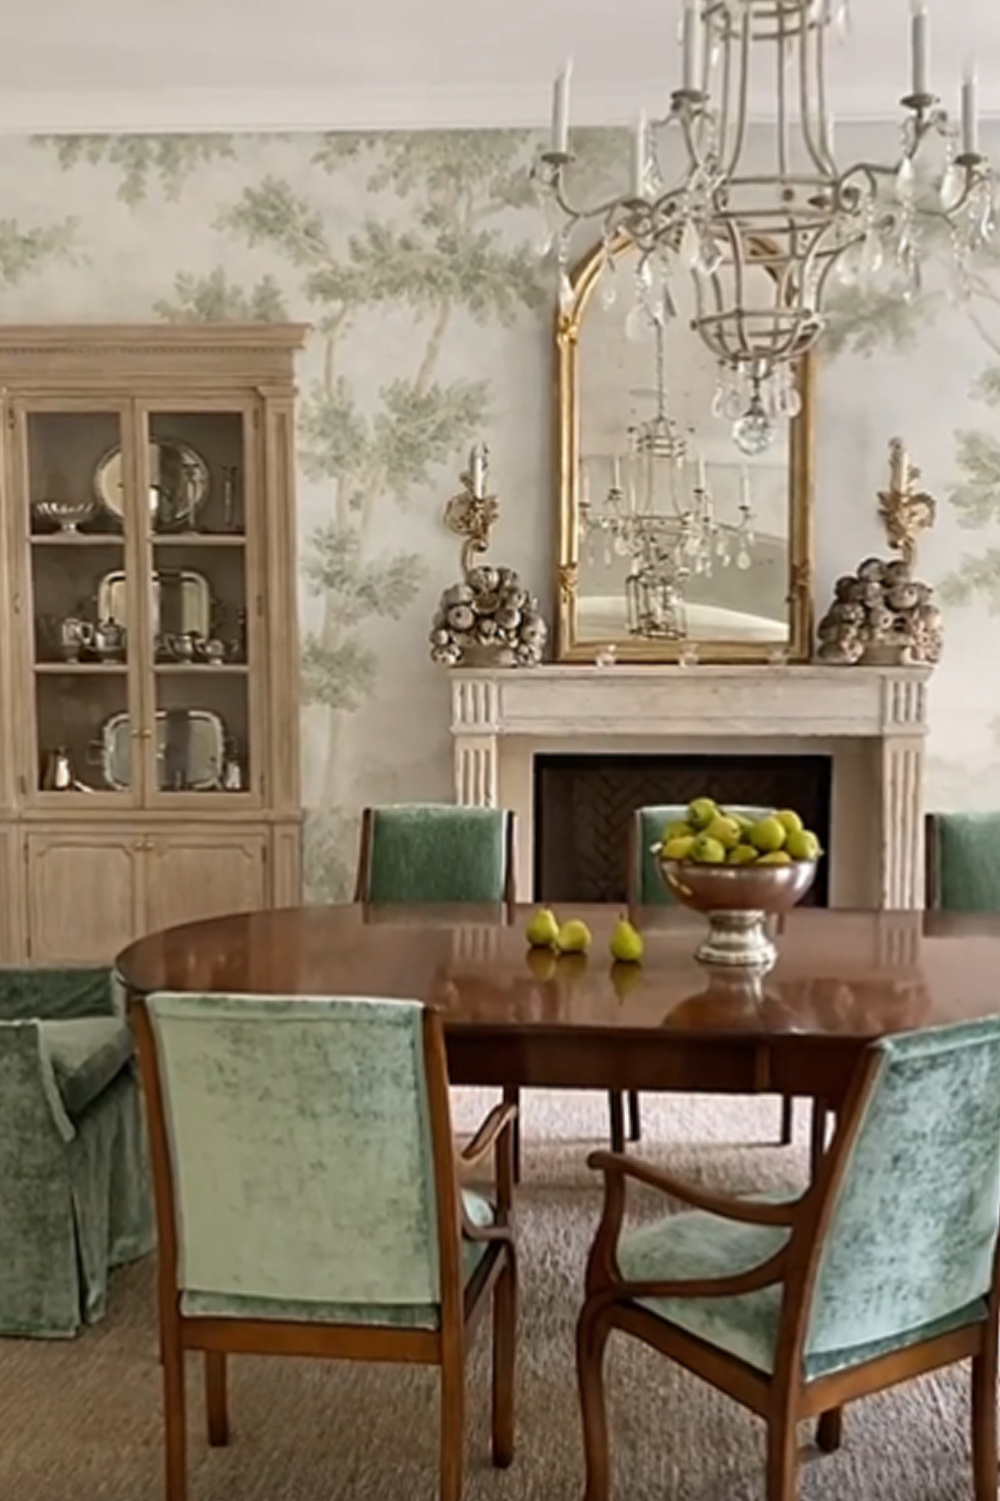 Elegant French country dining room with green accents, tree mural, and antique fireplace from Exquisite Surfaces - design by Giannetti Home. #interiordesign #diningrooms #traditionalstyle